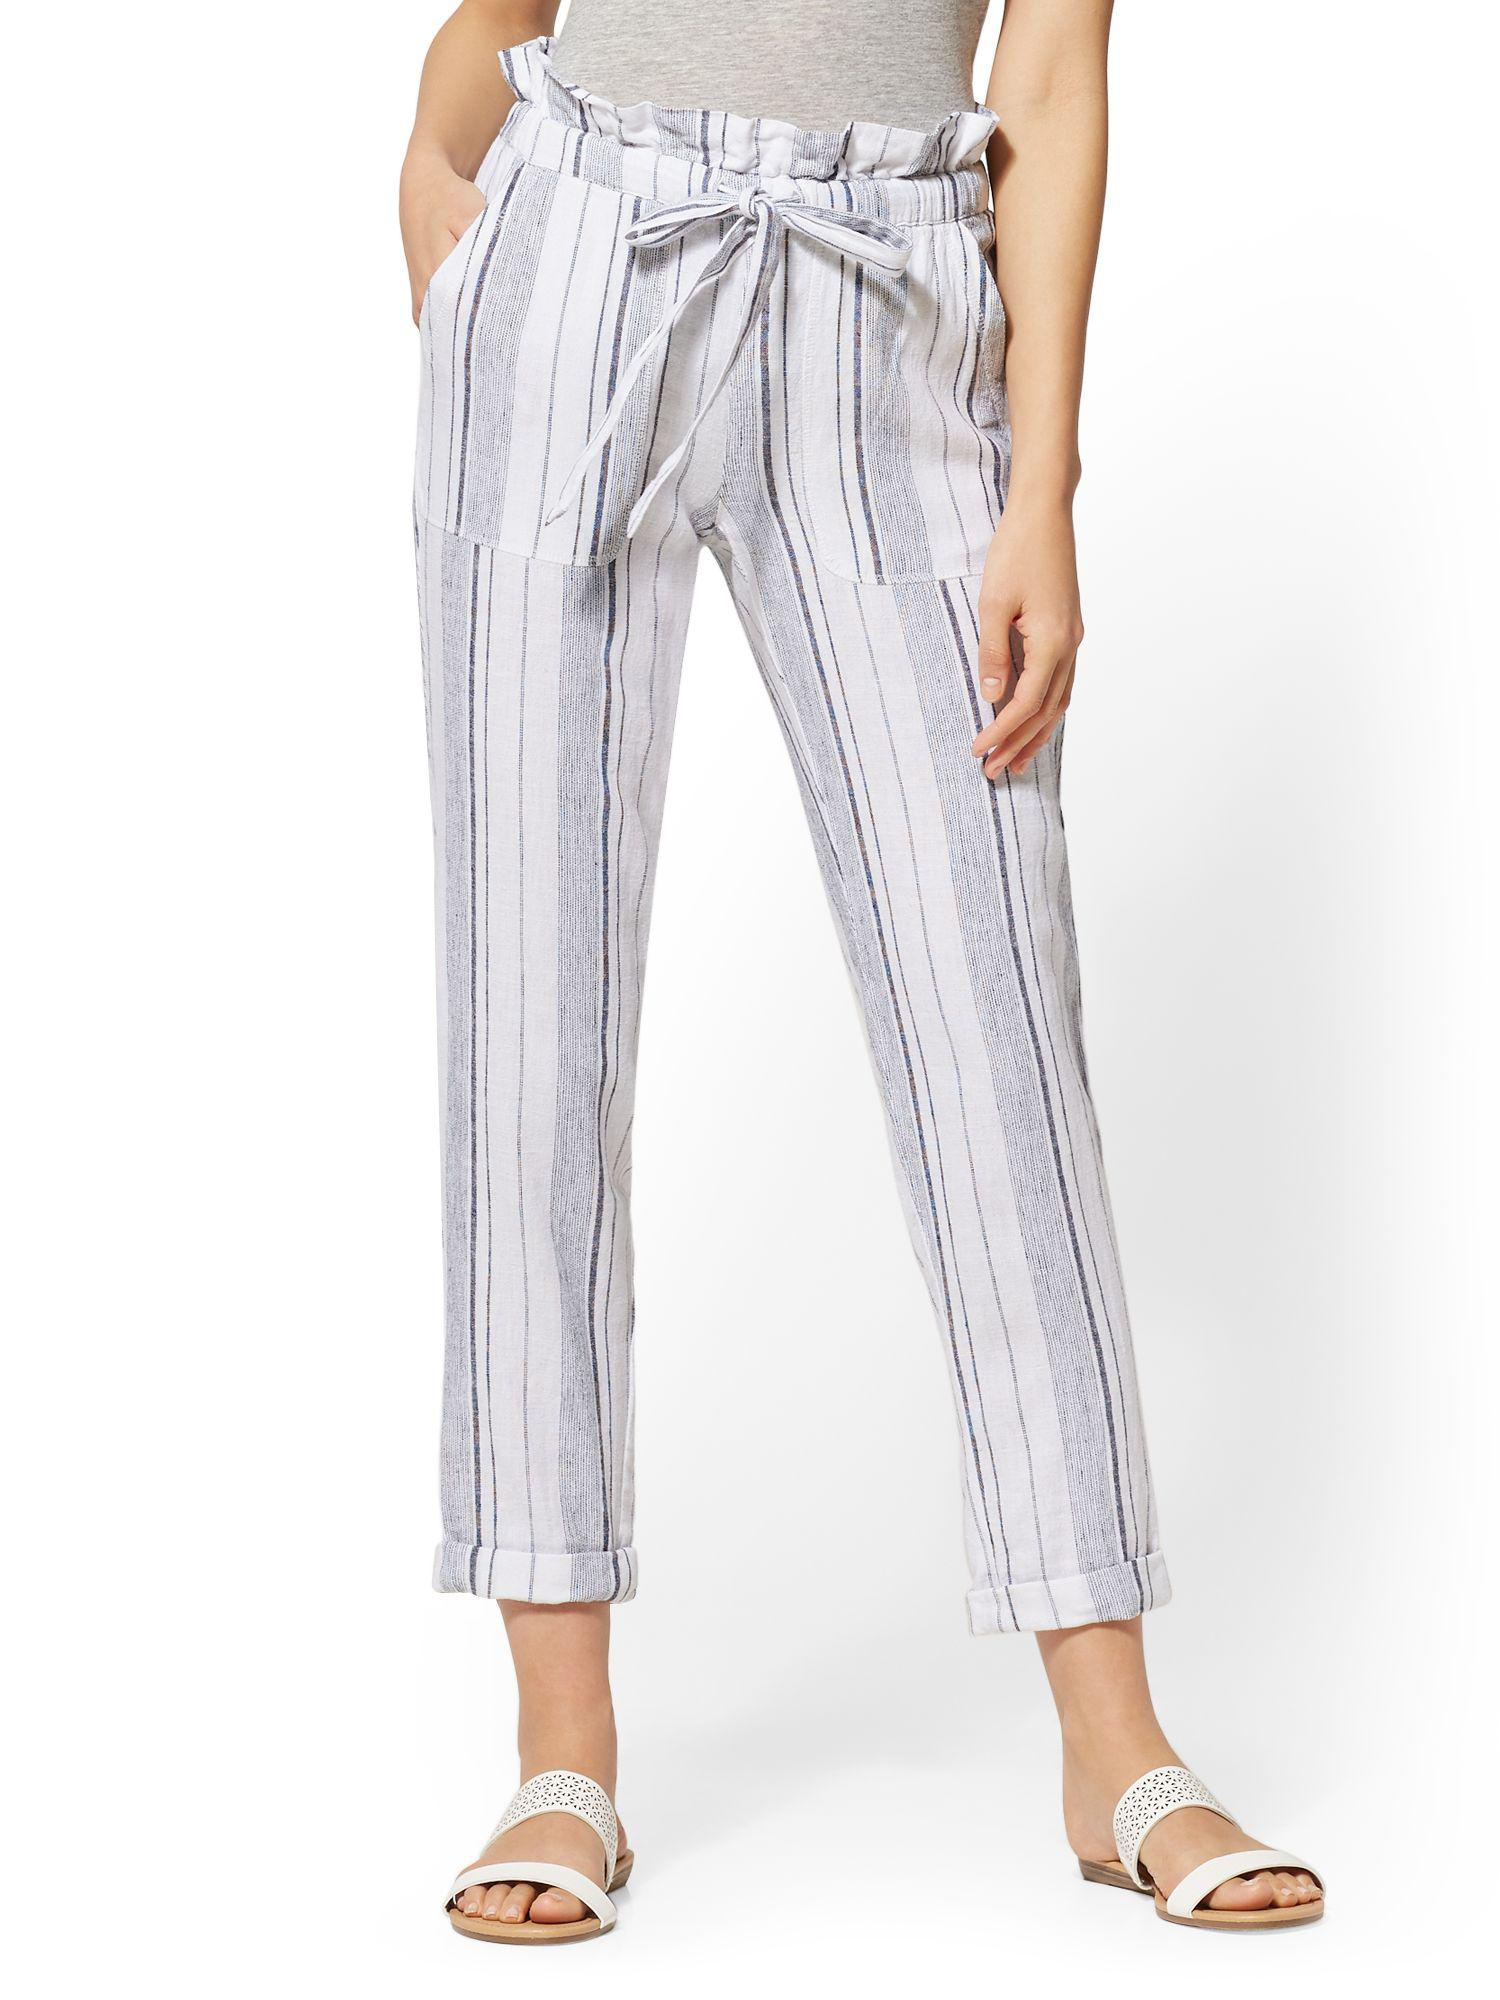 26257461d50 Gallery. Previously sold at  New York   Company · Women s Linen Pants ...